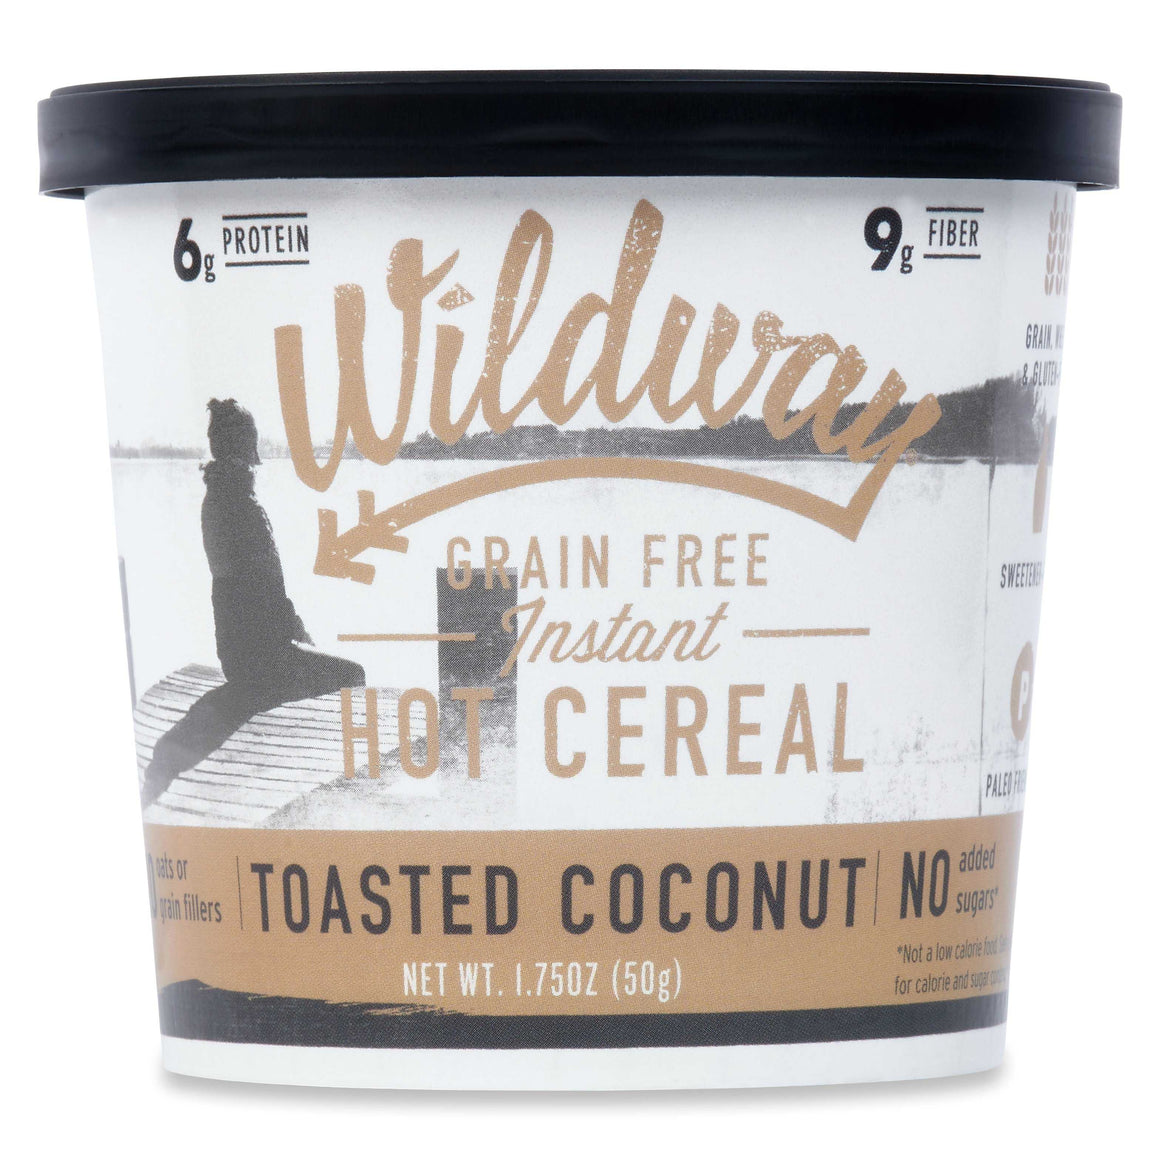 Grain-free Instant Hot Cereal Single Serve Cups: Toasted Coconut, 6 pack